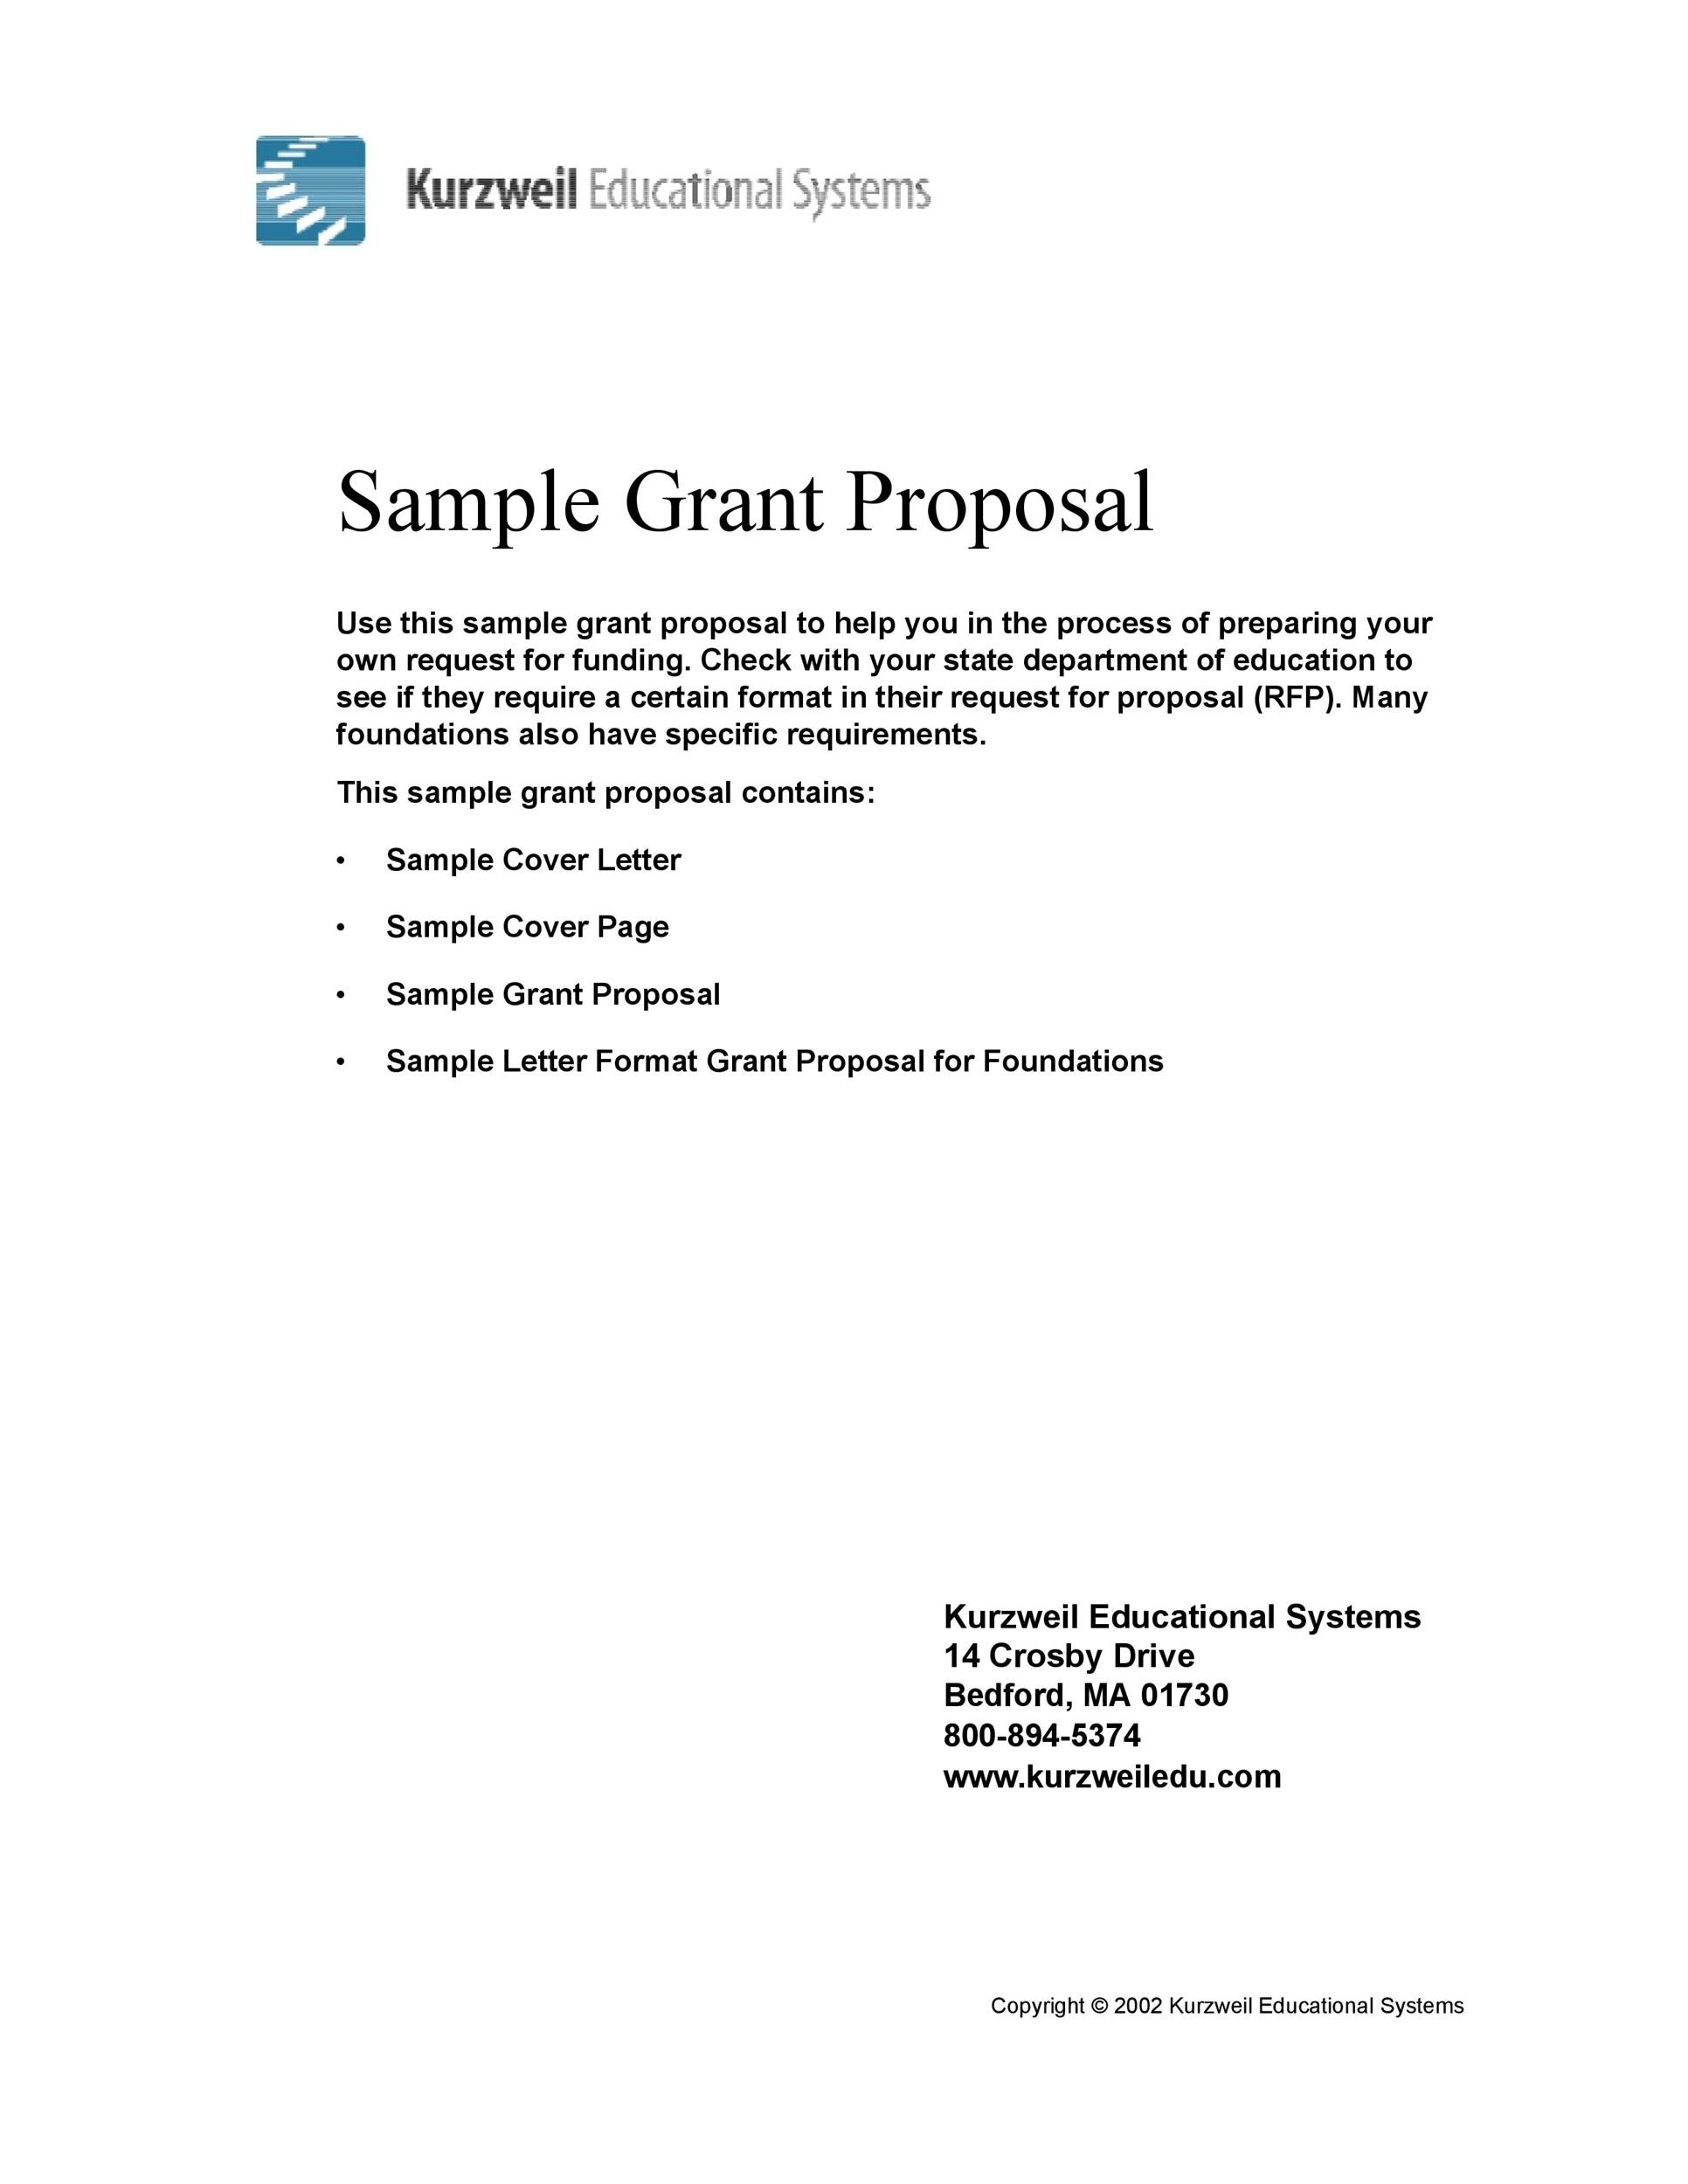 40 grant proposal templates nsf non profit research printable grant proposal template 20 altavistaventures Choice Image